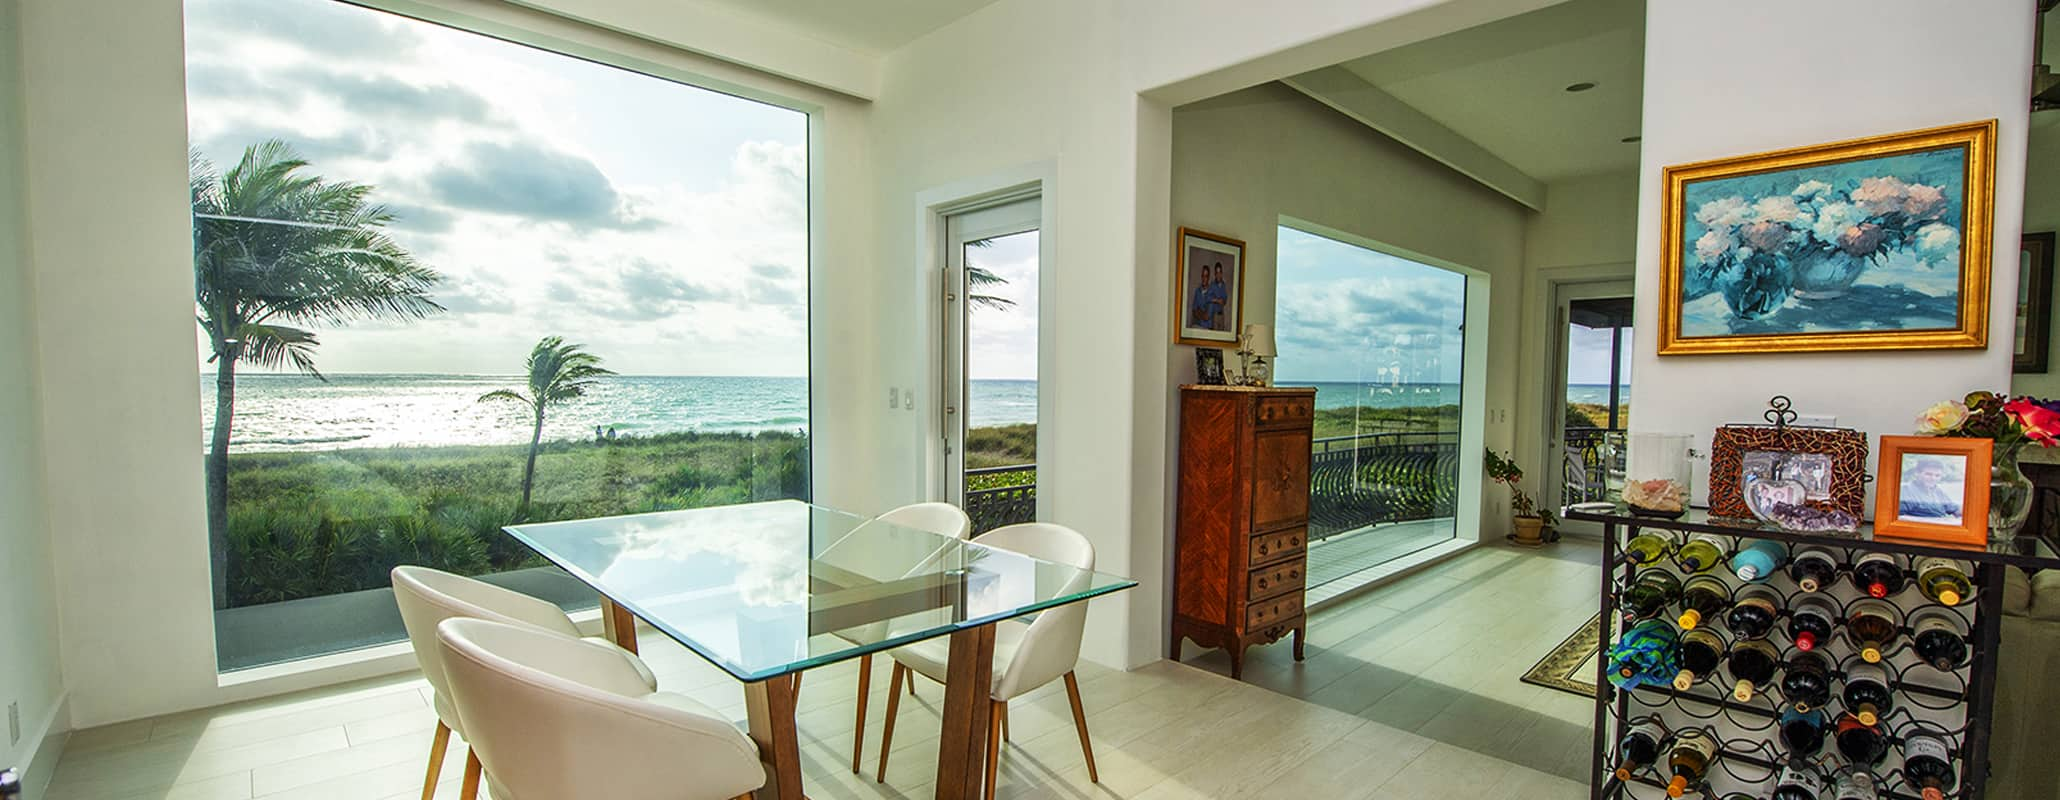 Dining room with glass table, 4 chairs, wine bar, looking out floor-to-ceiling FS-300 Maxi View Impact Storefront System by Aldora, modern interior design, ocean view through impact window